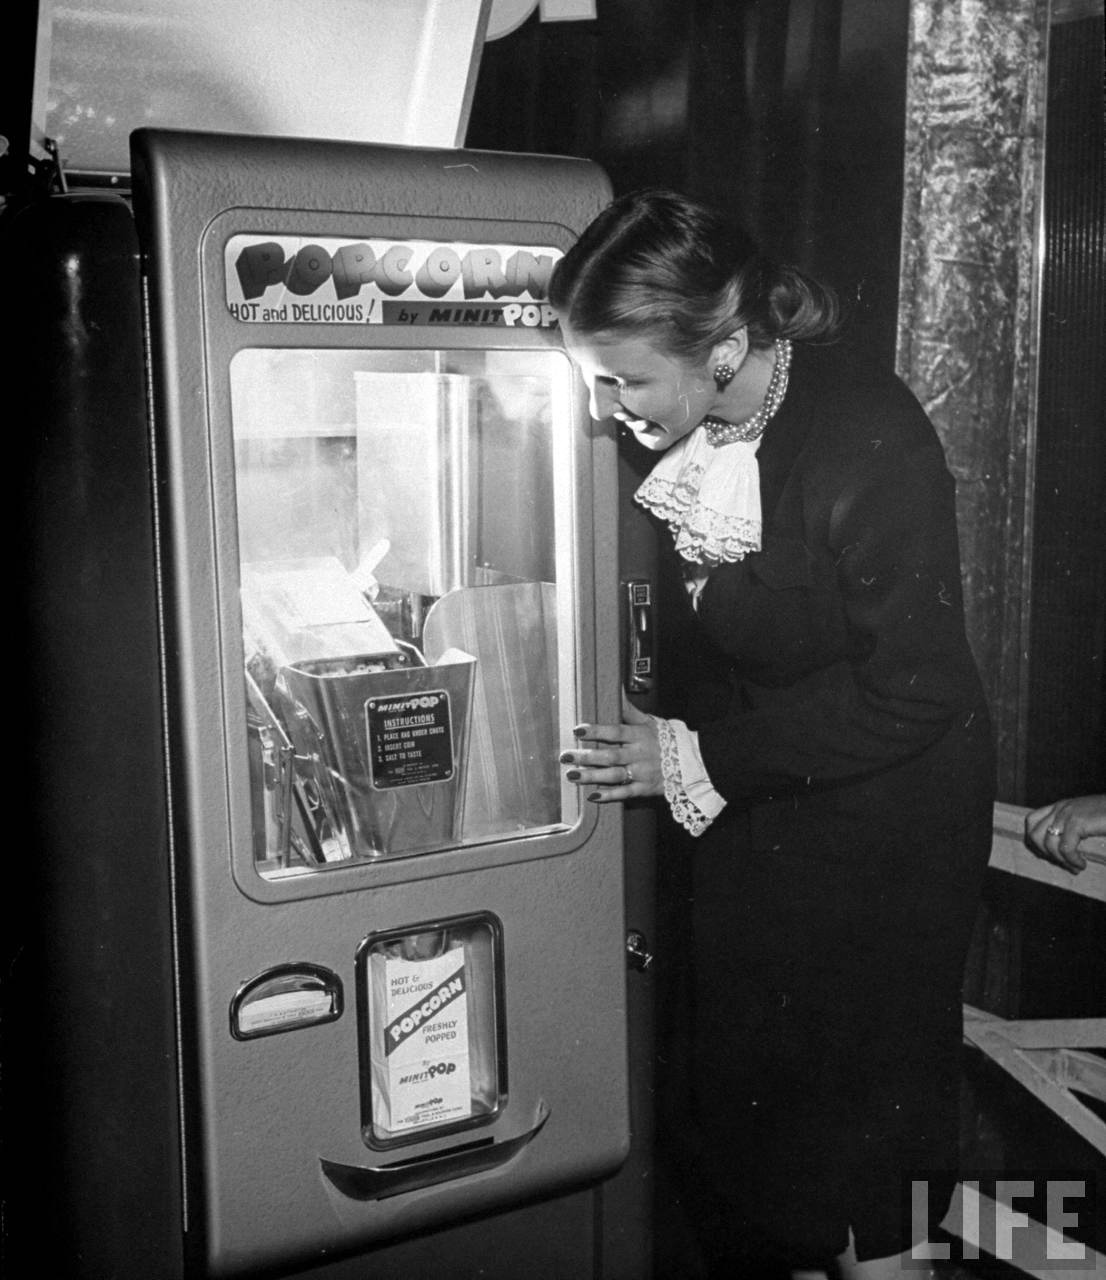 Photograph of a vintage coin-operated popcorn machine, 1947 (Life magazine, Wallace Kirkland)